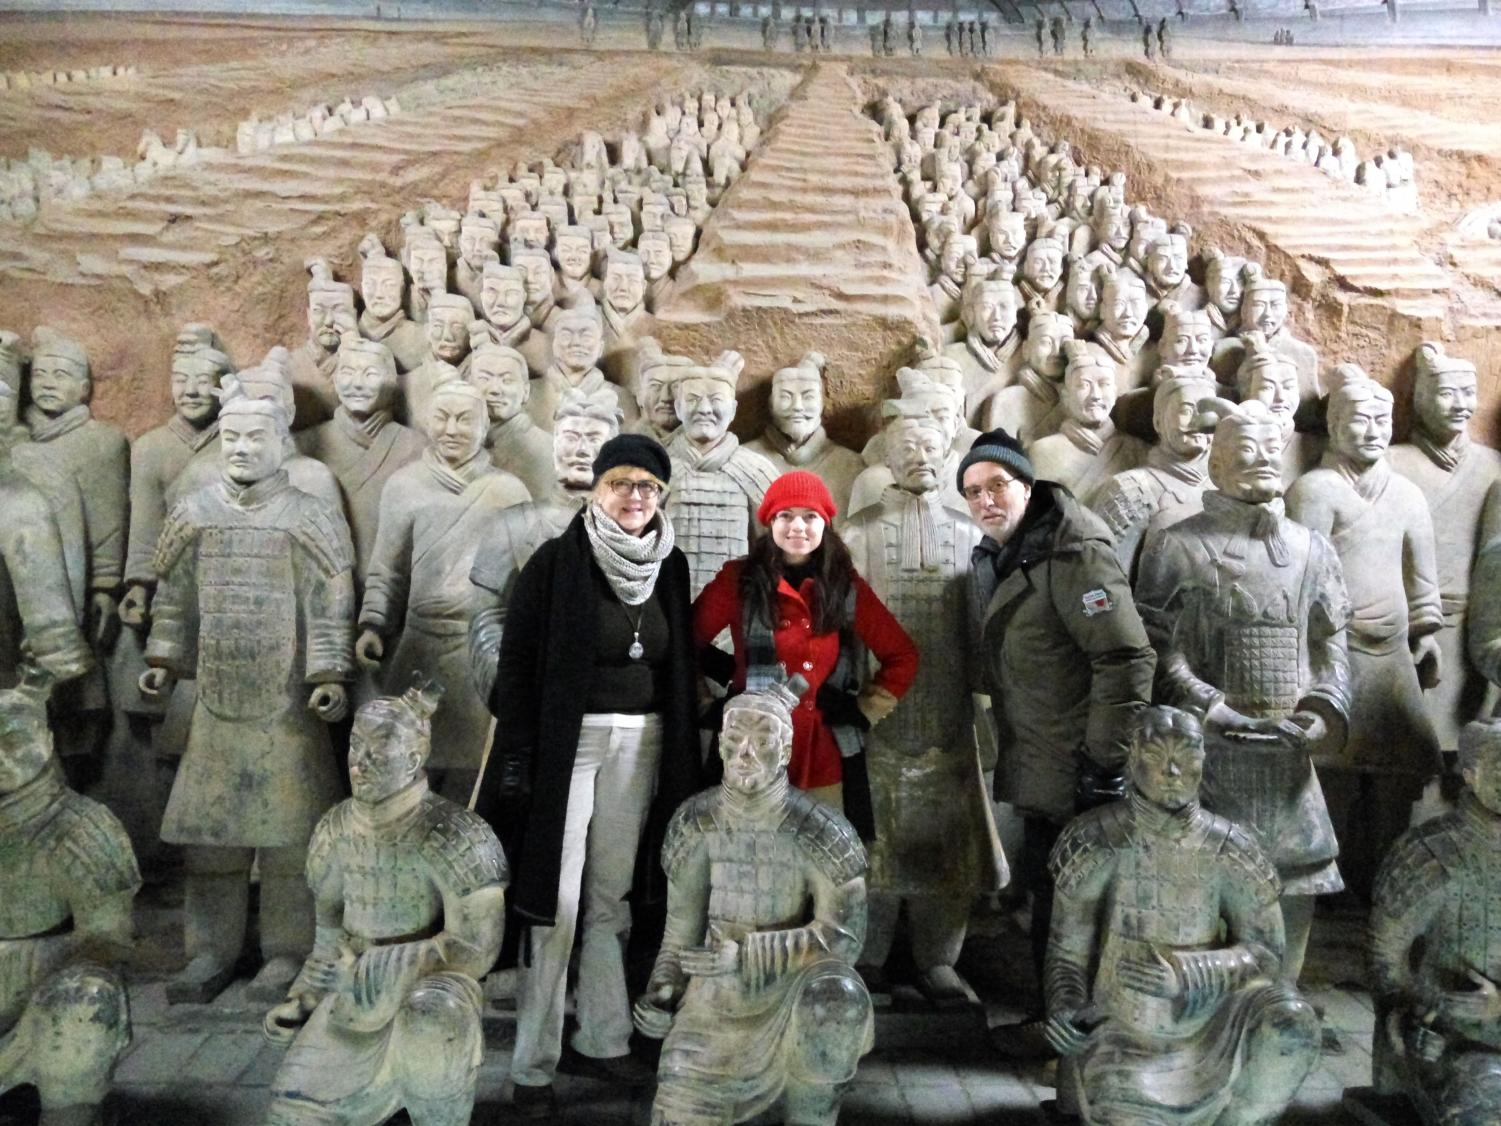 Theresa Zinda takes a picture with her husband and daughter in front of the Terracotta soldiers in Beijing, China.